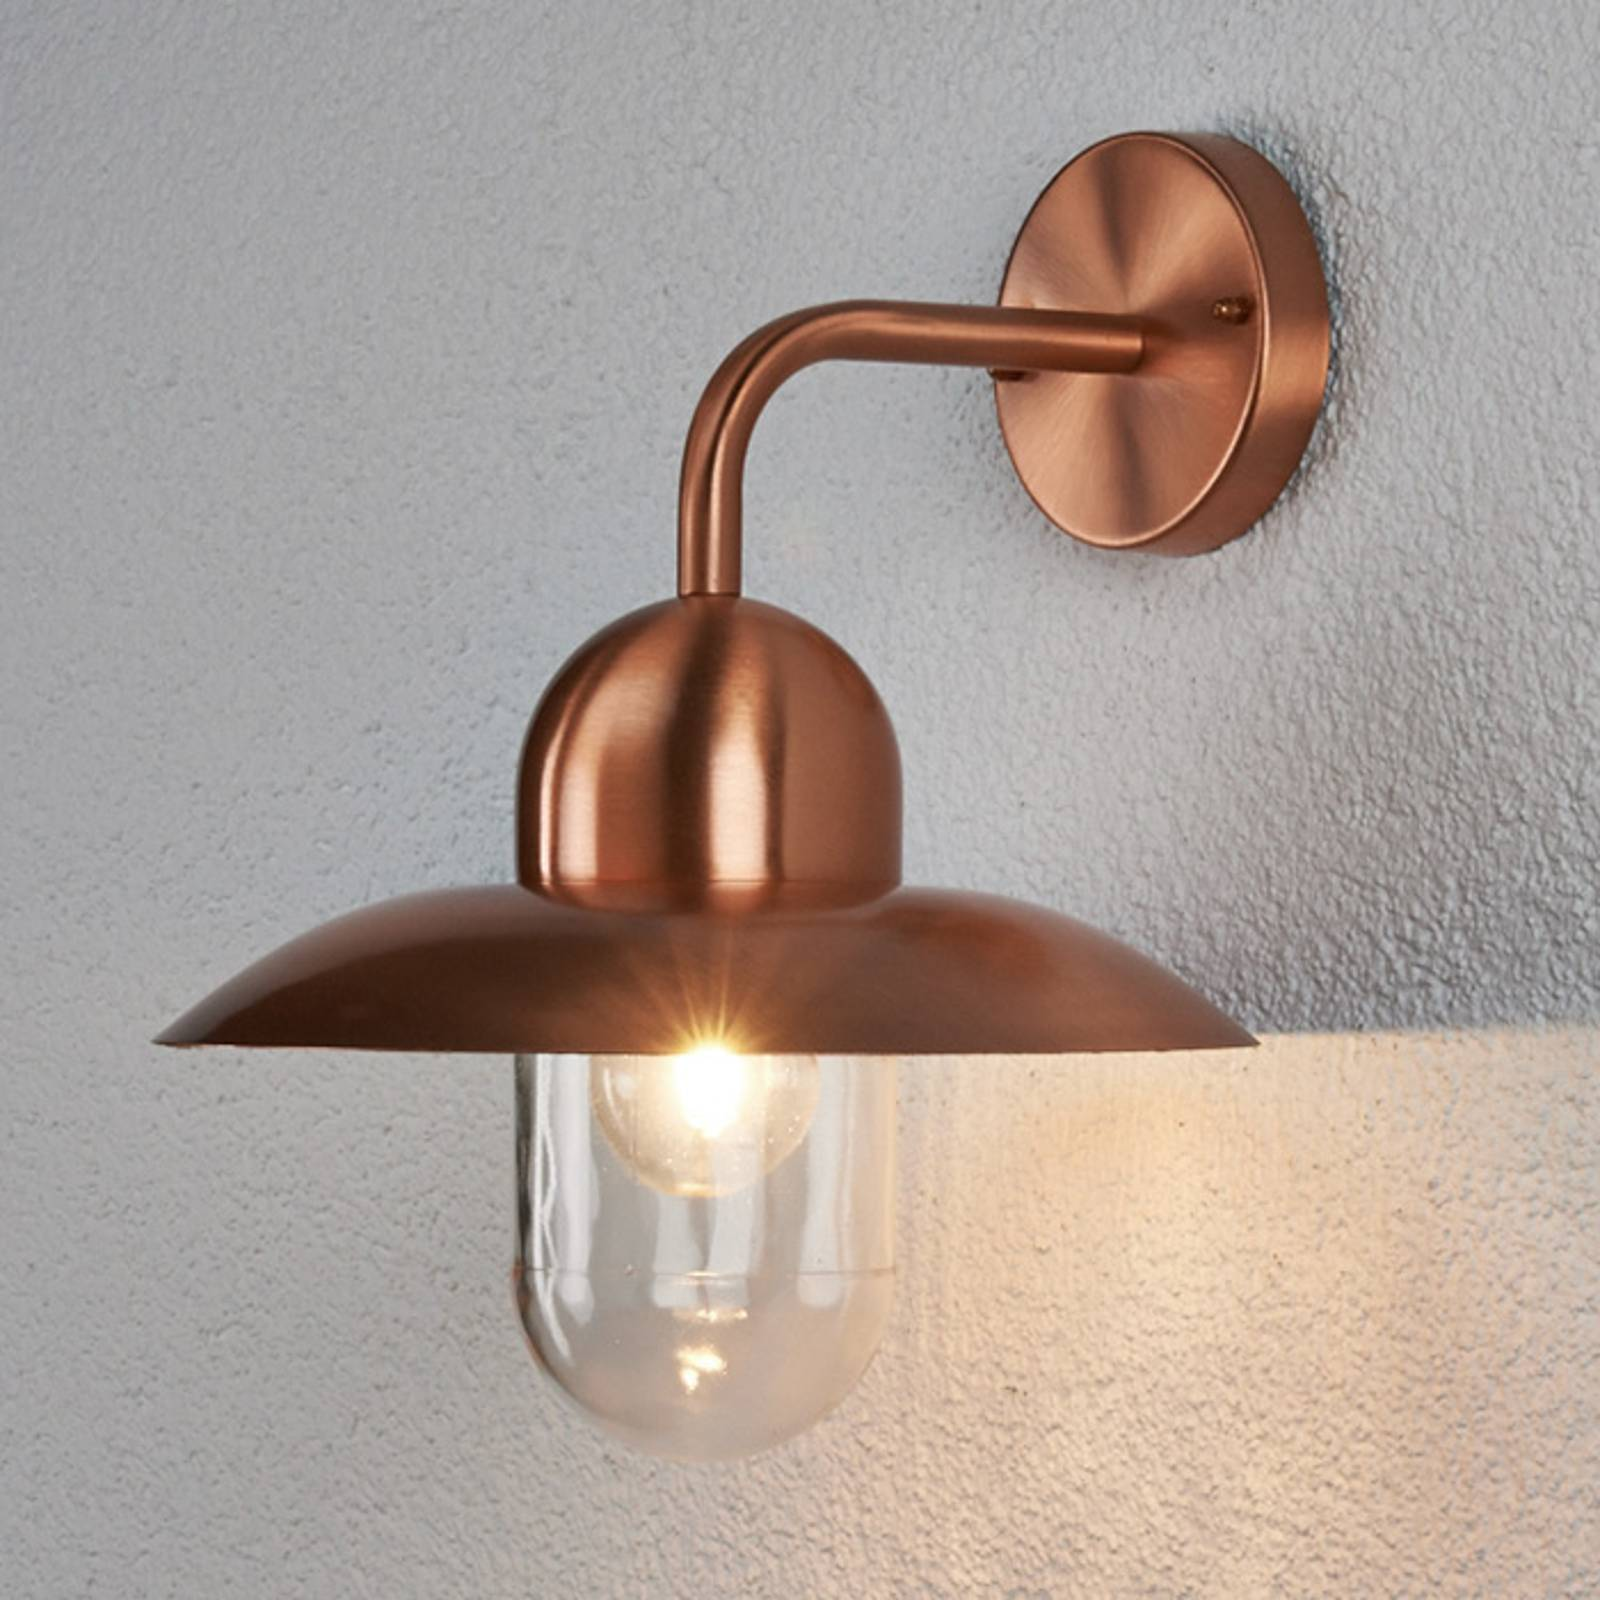 Camila wall light for outdoors, copper-coloured from Lindby